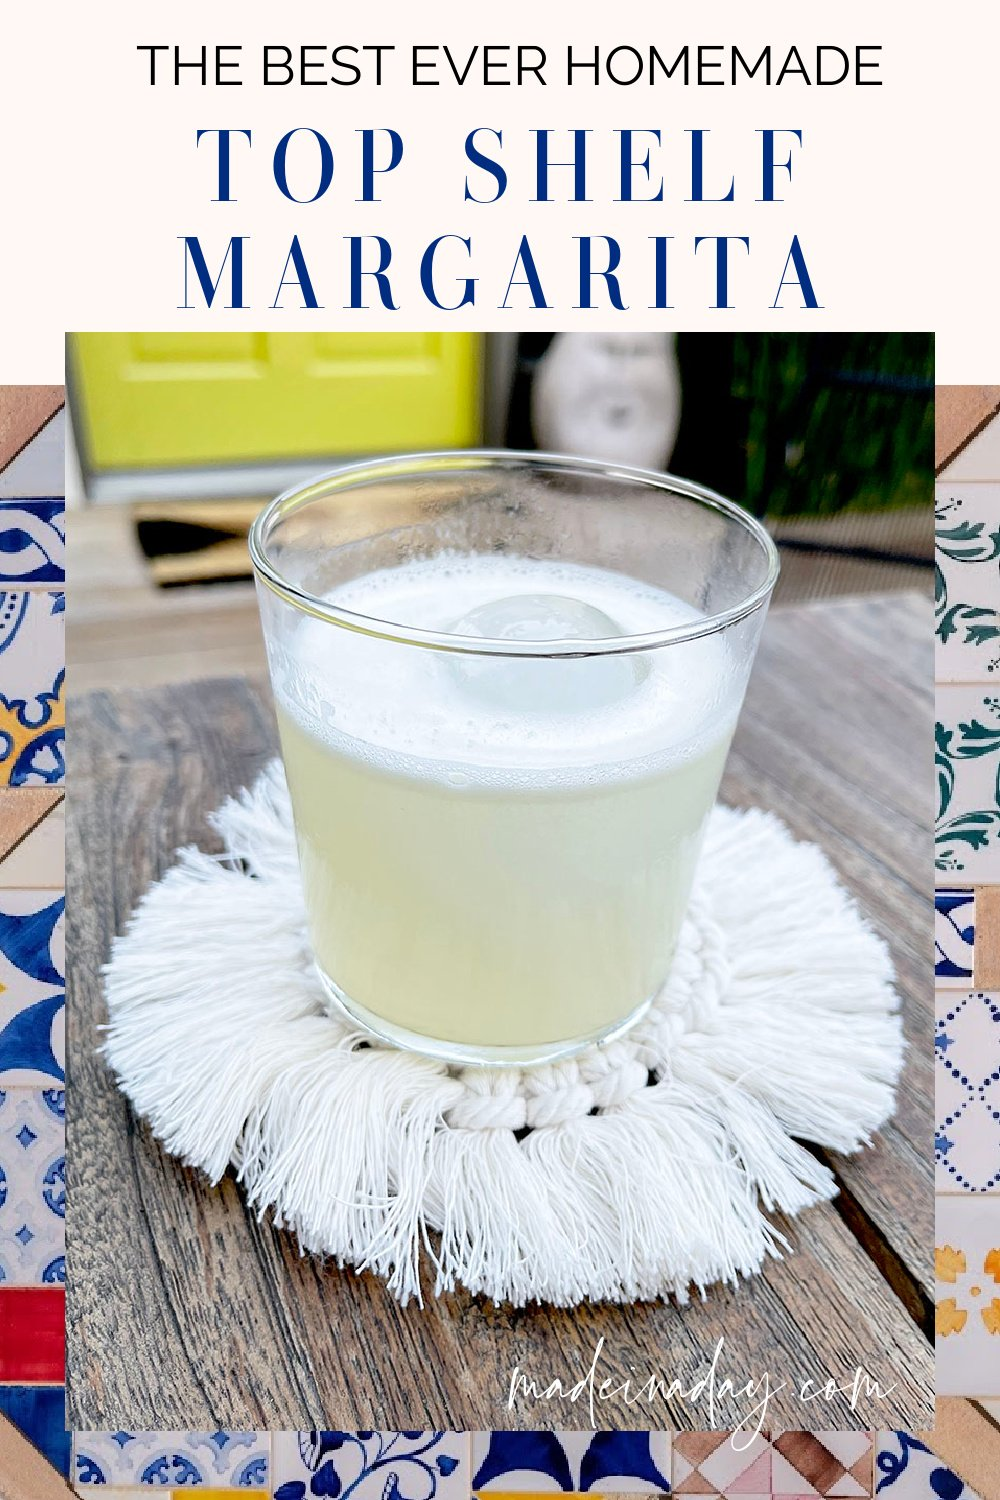 Best Homemade Margarita Recipe From Scratch